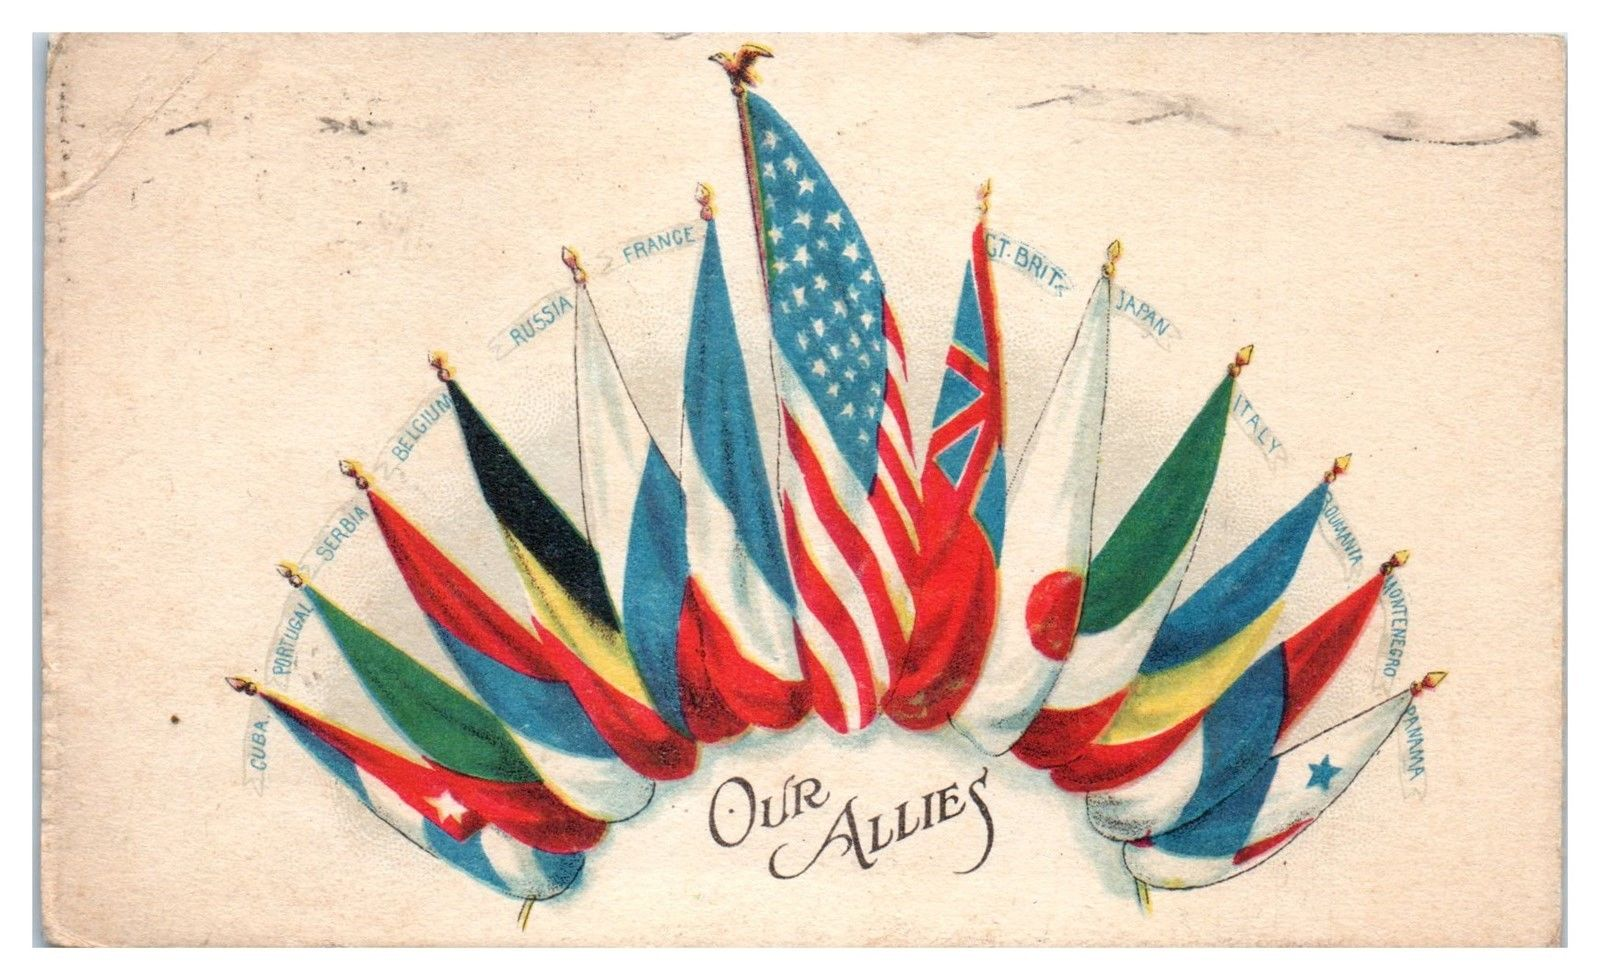 1918 WWI Allied Powers Flags, Our Allies Postcard / HipPostcard